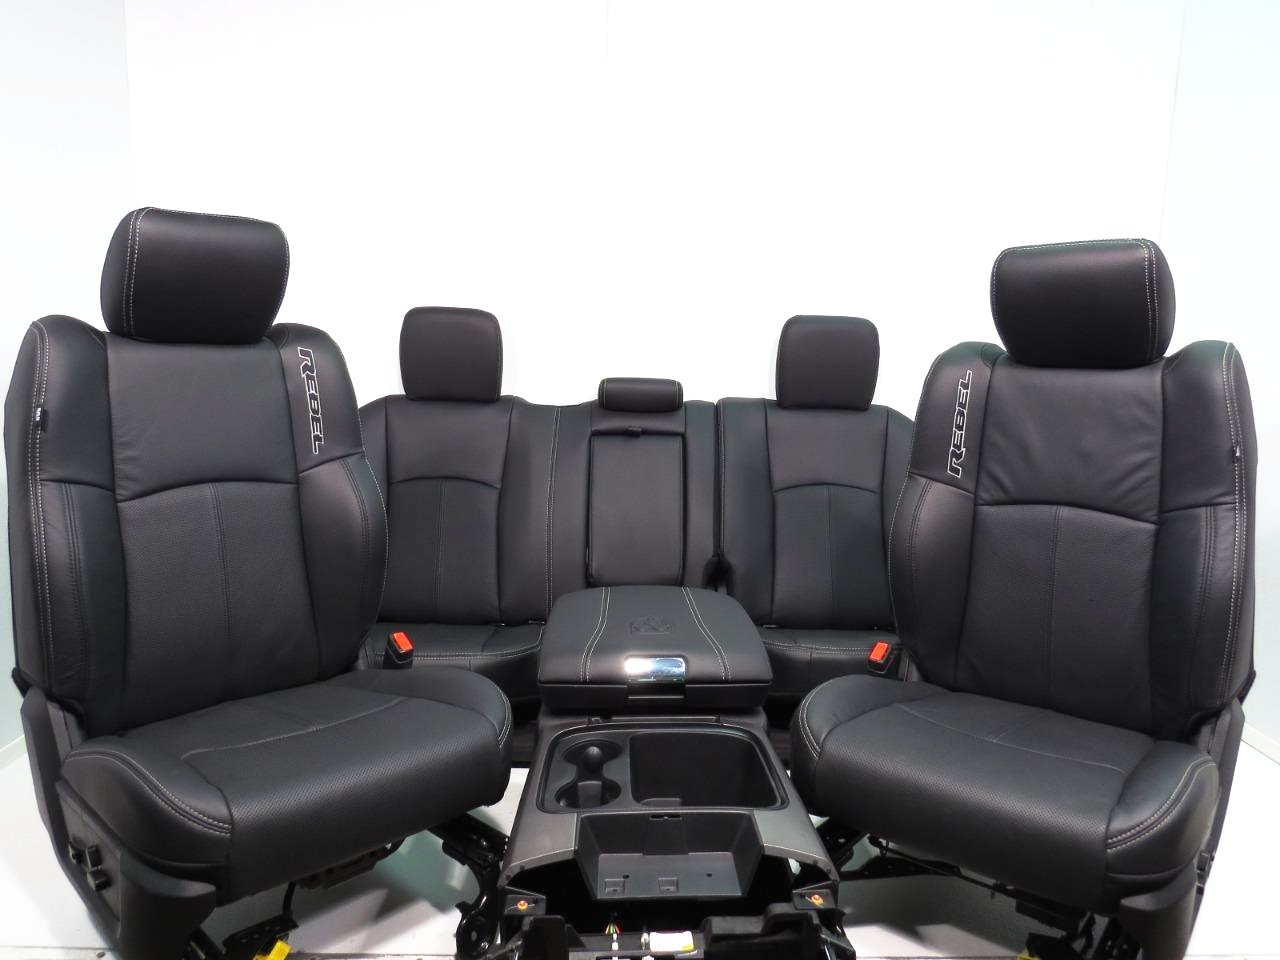 Fantastic Dodge Ram Rebel New Take Out Seats Front Rear Center Console 2009 2010 2011 2012 2013 2014 2015 2016 2017 Lamtechconsult Wood Chair Design Ideas Lamtechconsultcom